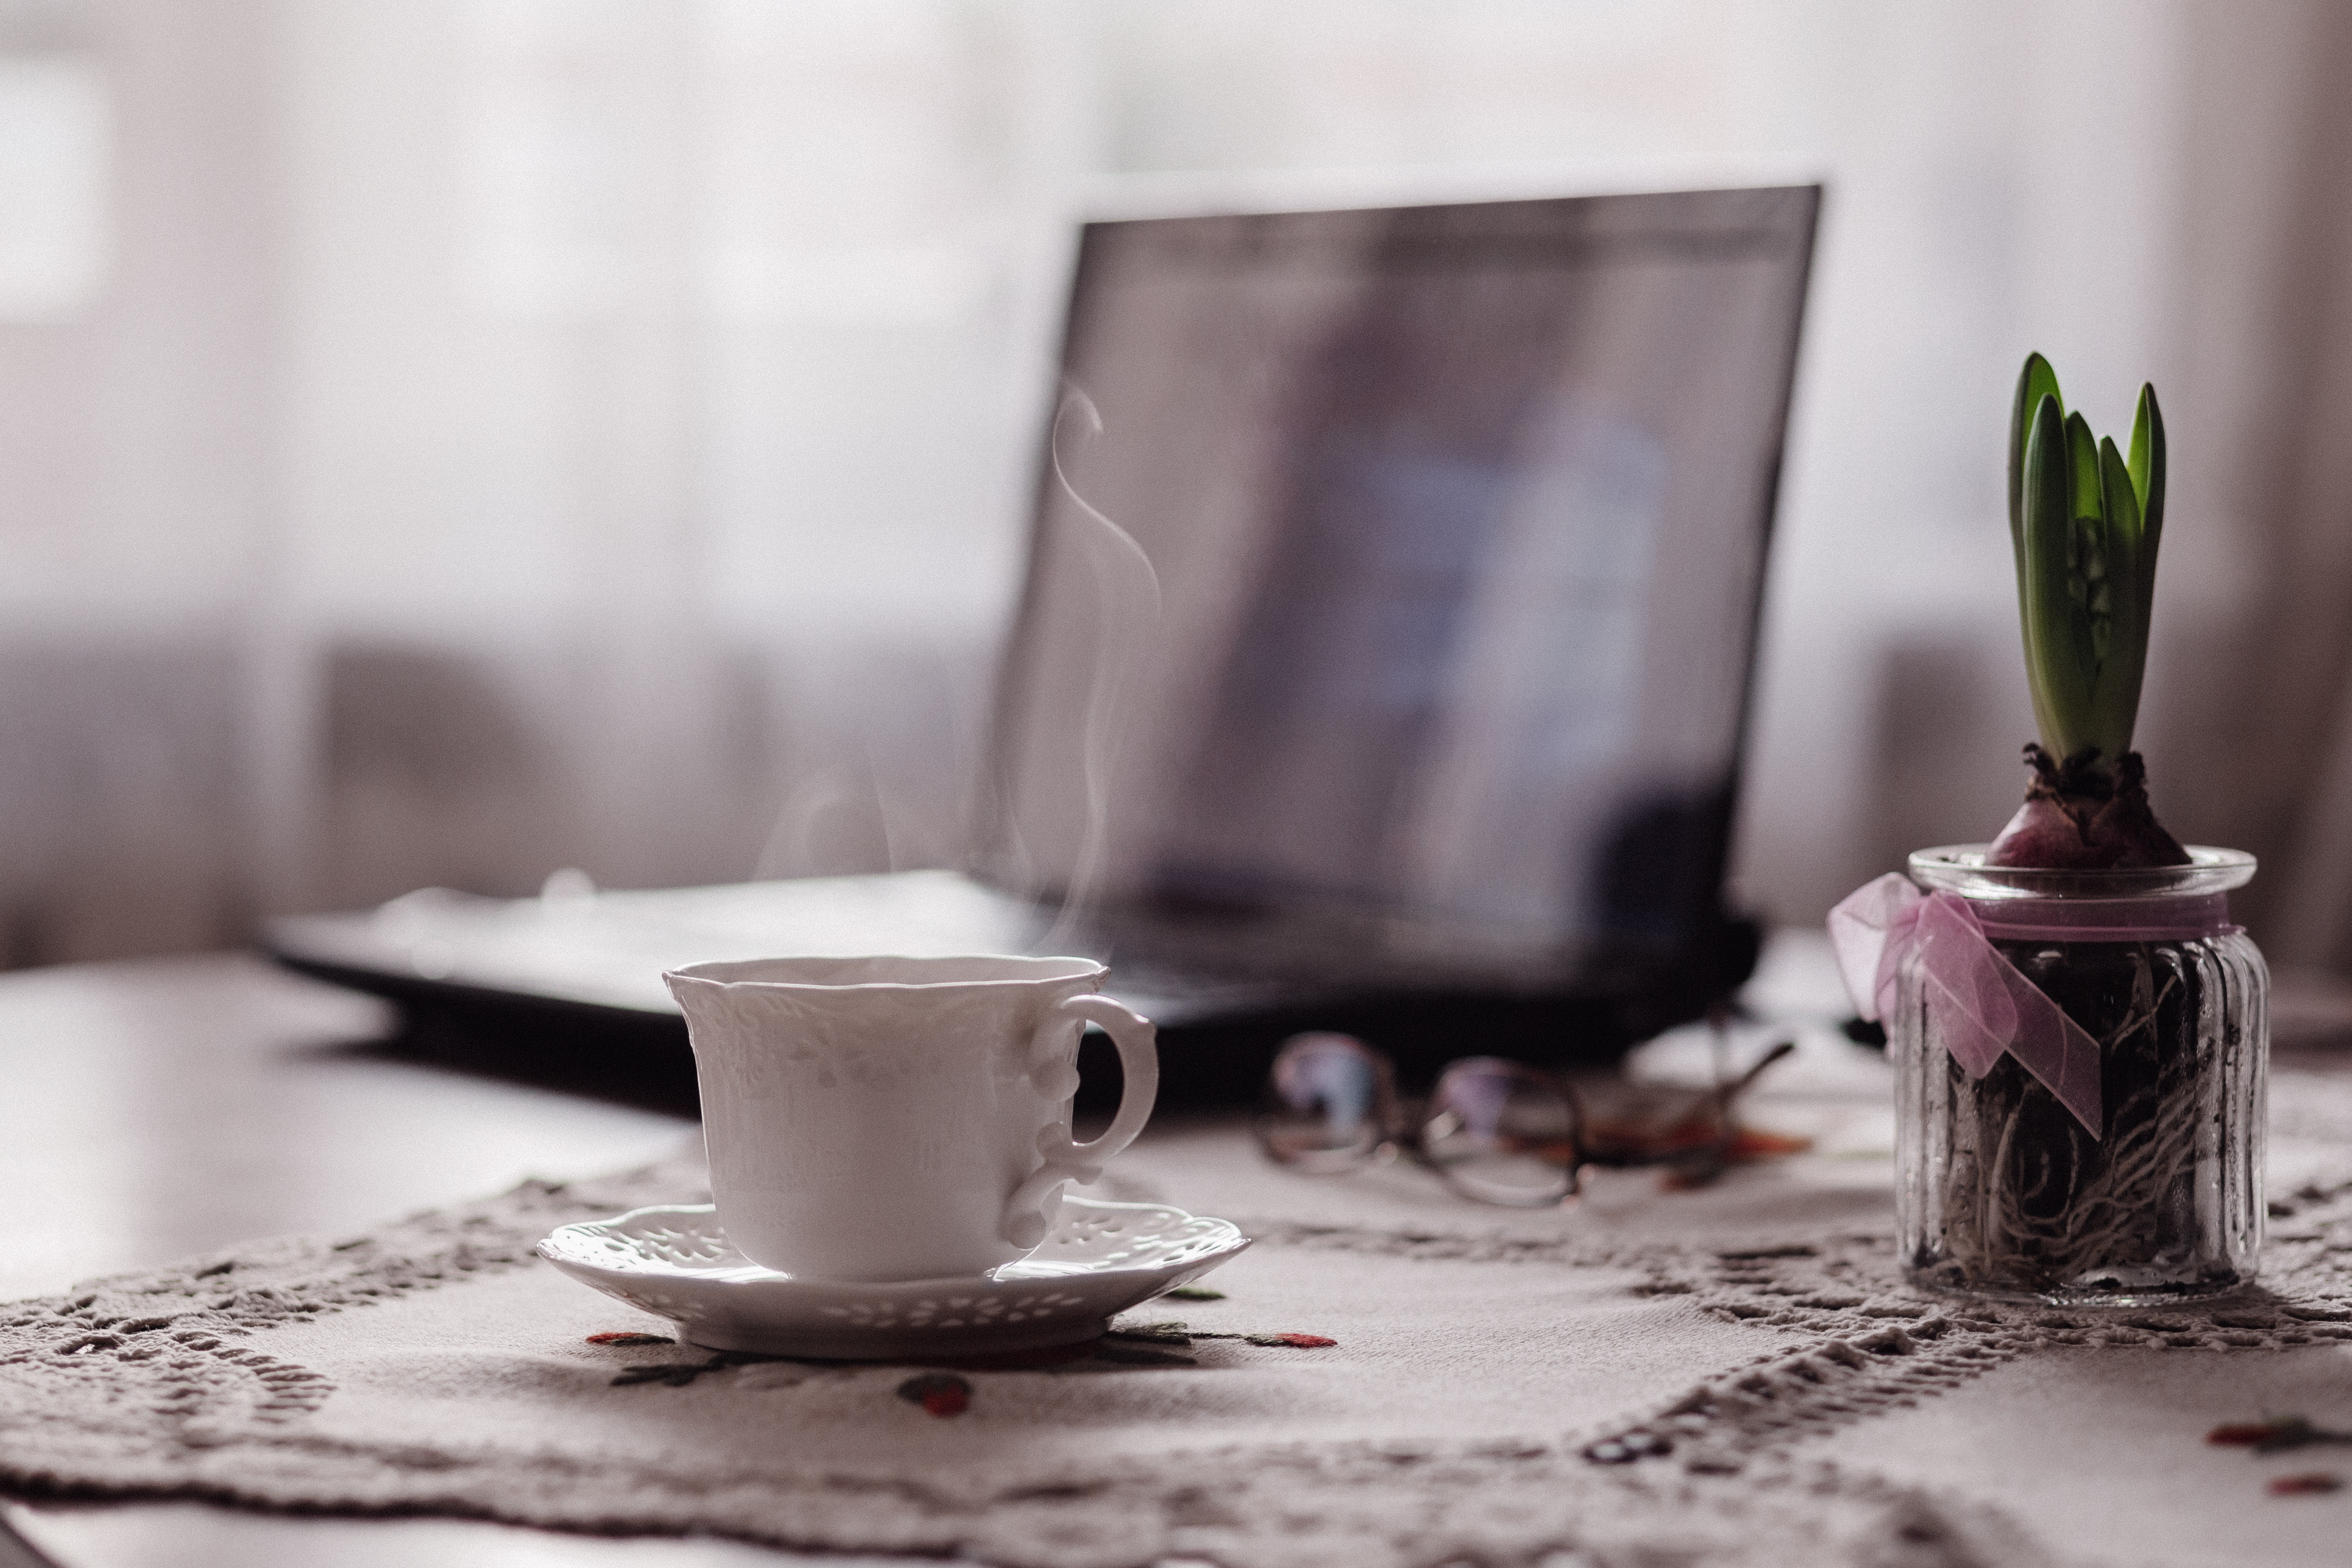 Cozy computer work at home comfortably love working at home enjoy writing